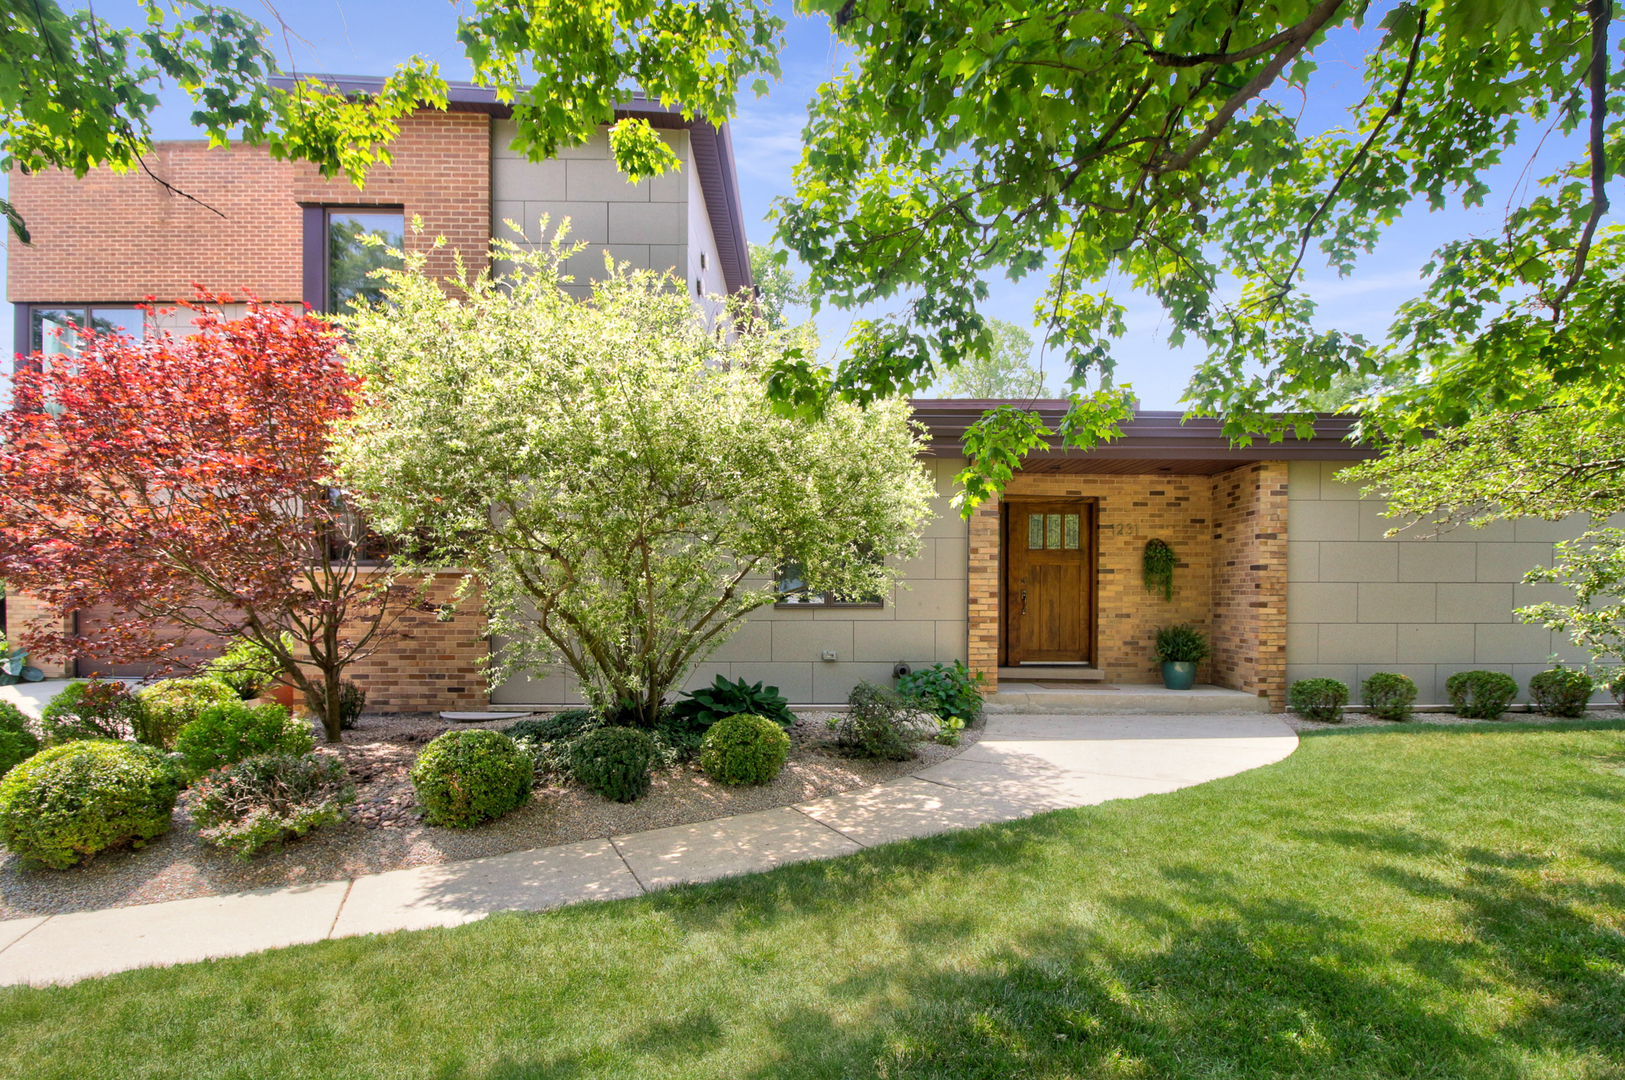 Photo for 1231 59th Street, Downers Grove, IL 60516 (MLS # 10904716)